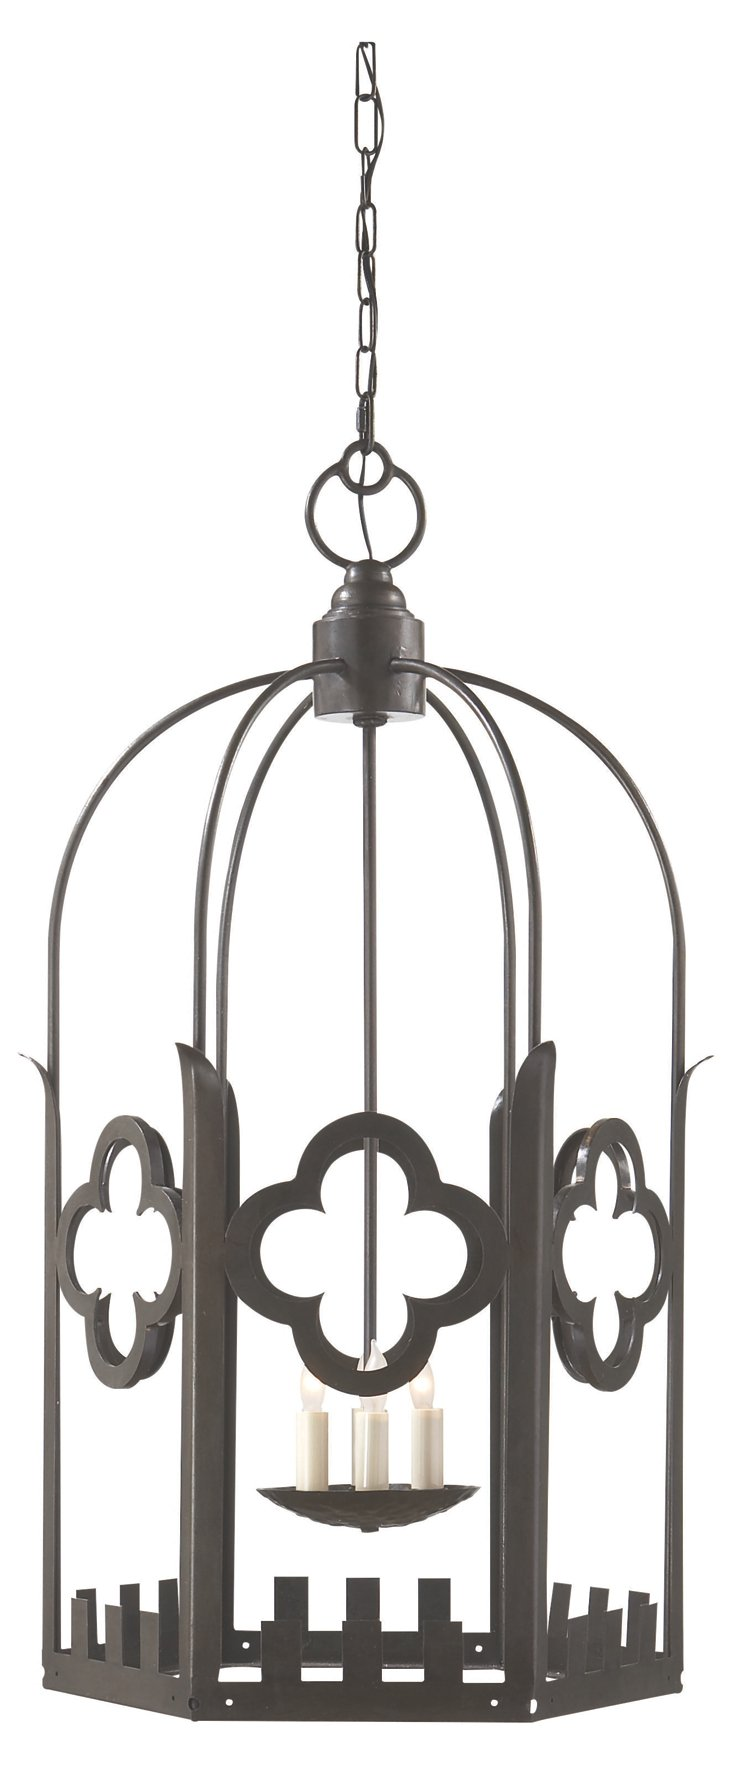 Baltic 4-Light Hanging Lantern, Aged